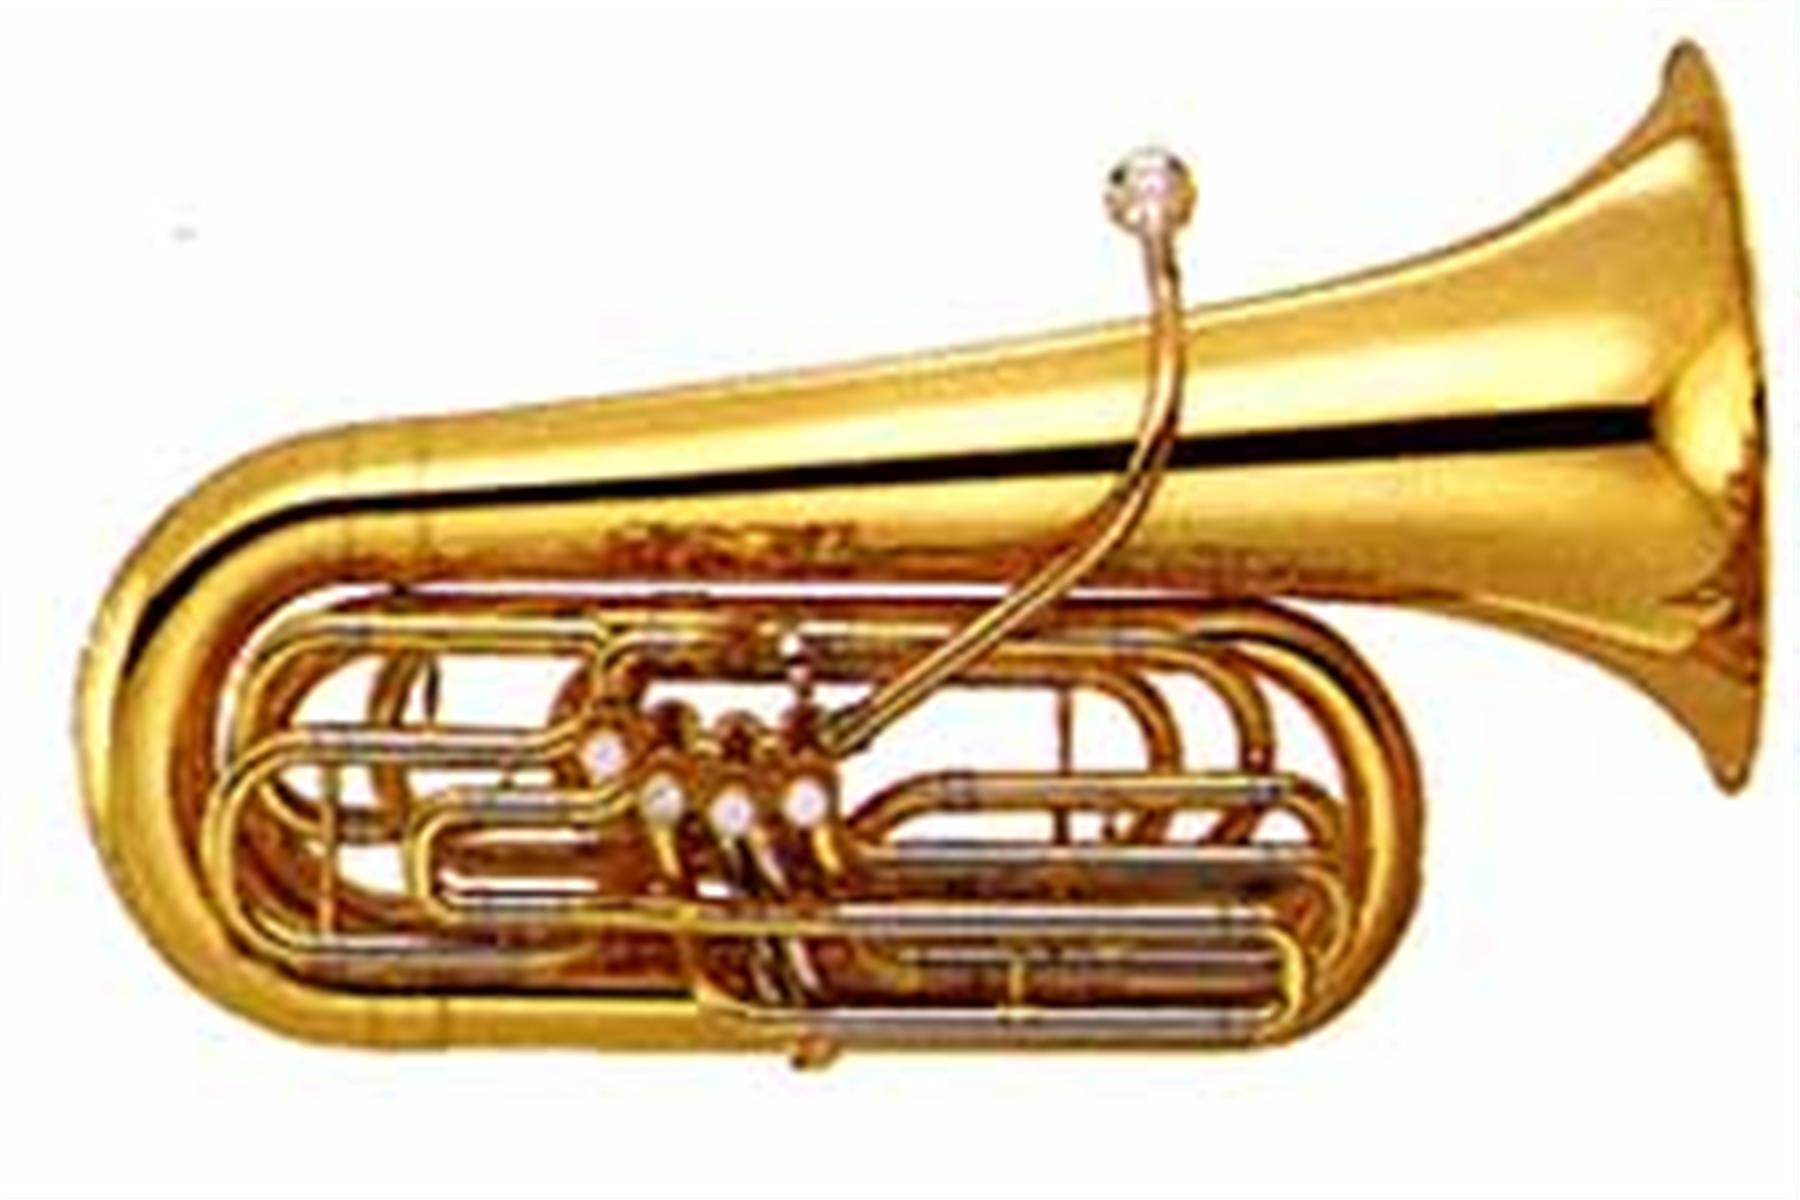 hight resolution of tuba trombone cliparts 3094815 license personal use